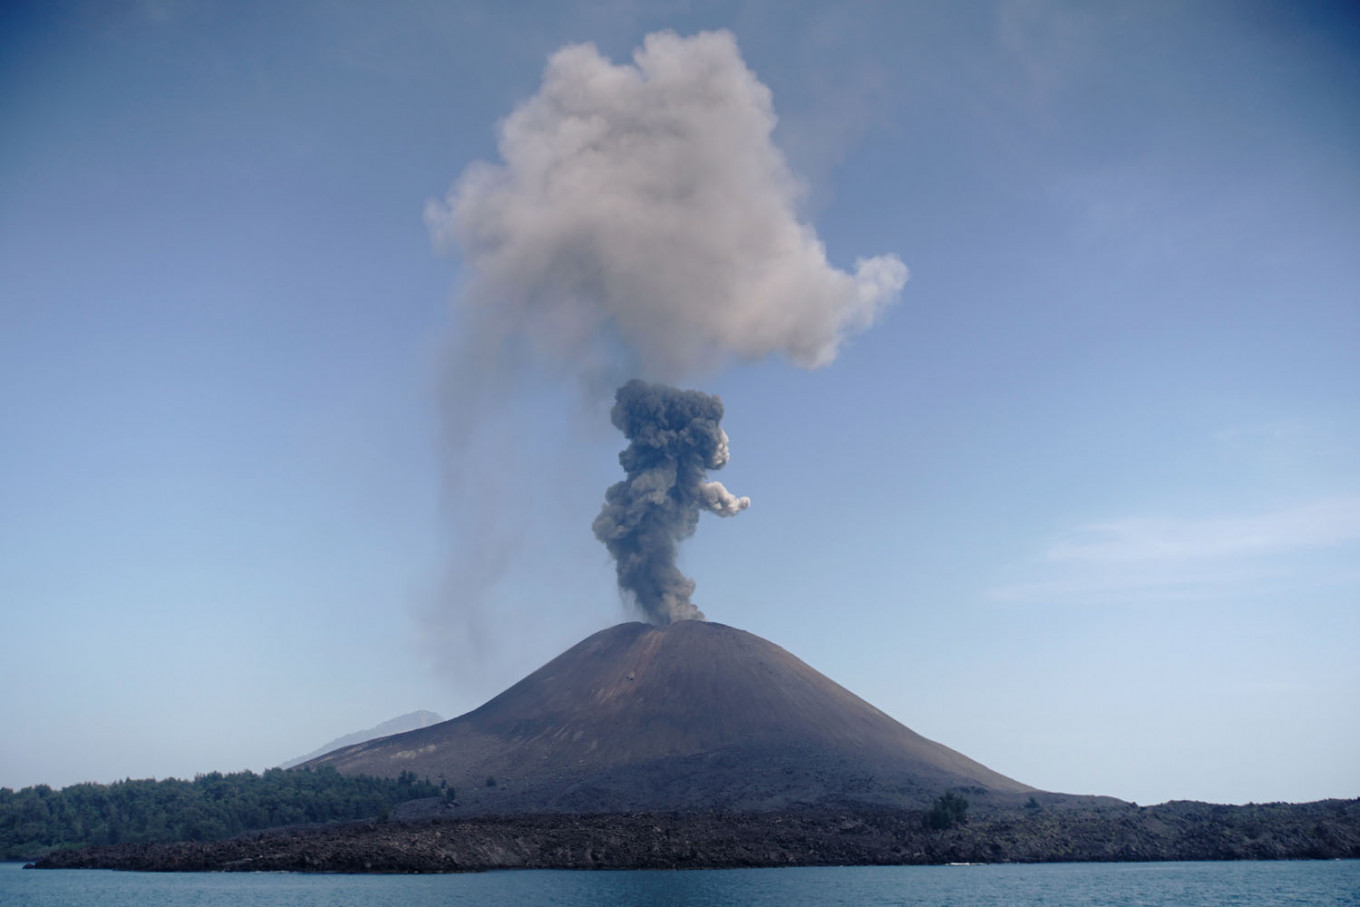 Indonesia has no early warning system for volcanic tsunamis: BNPB